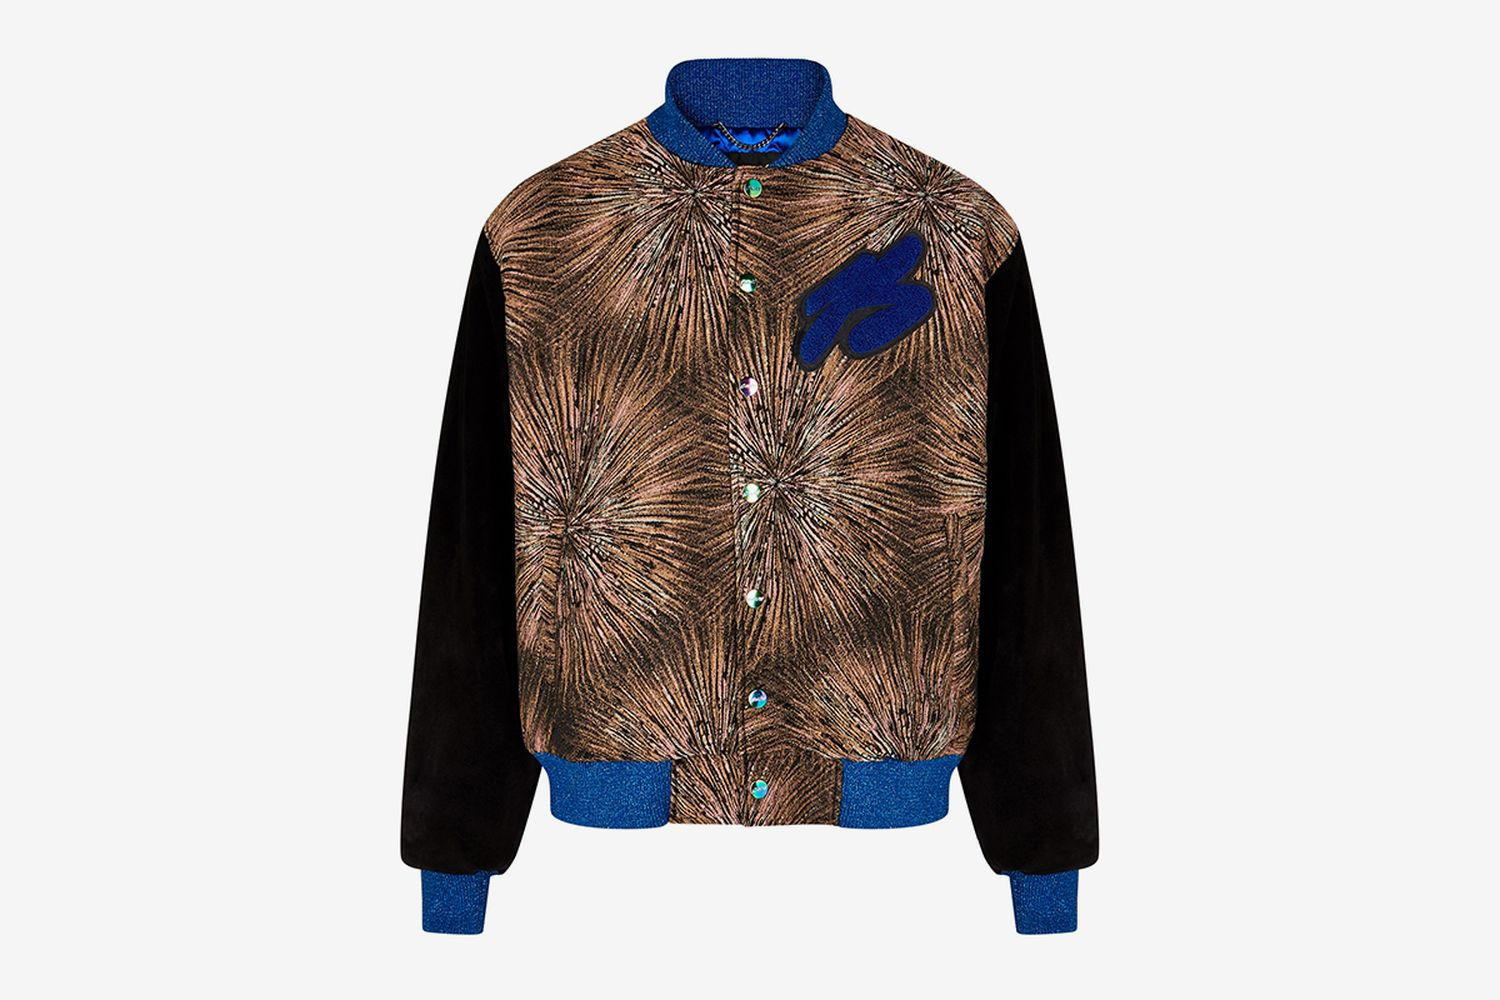 Brocade and Suede Bomber Jacket